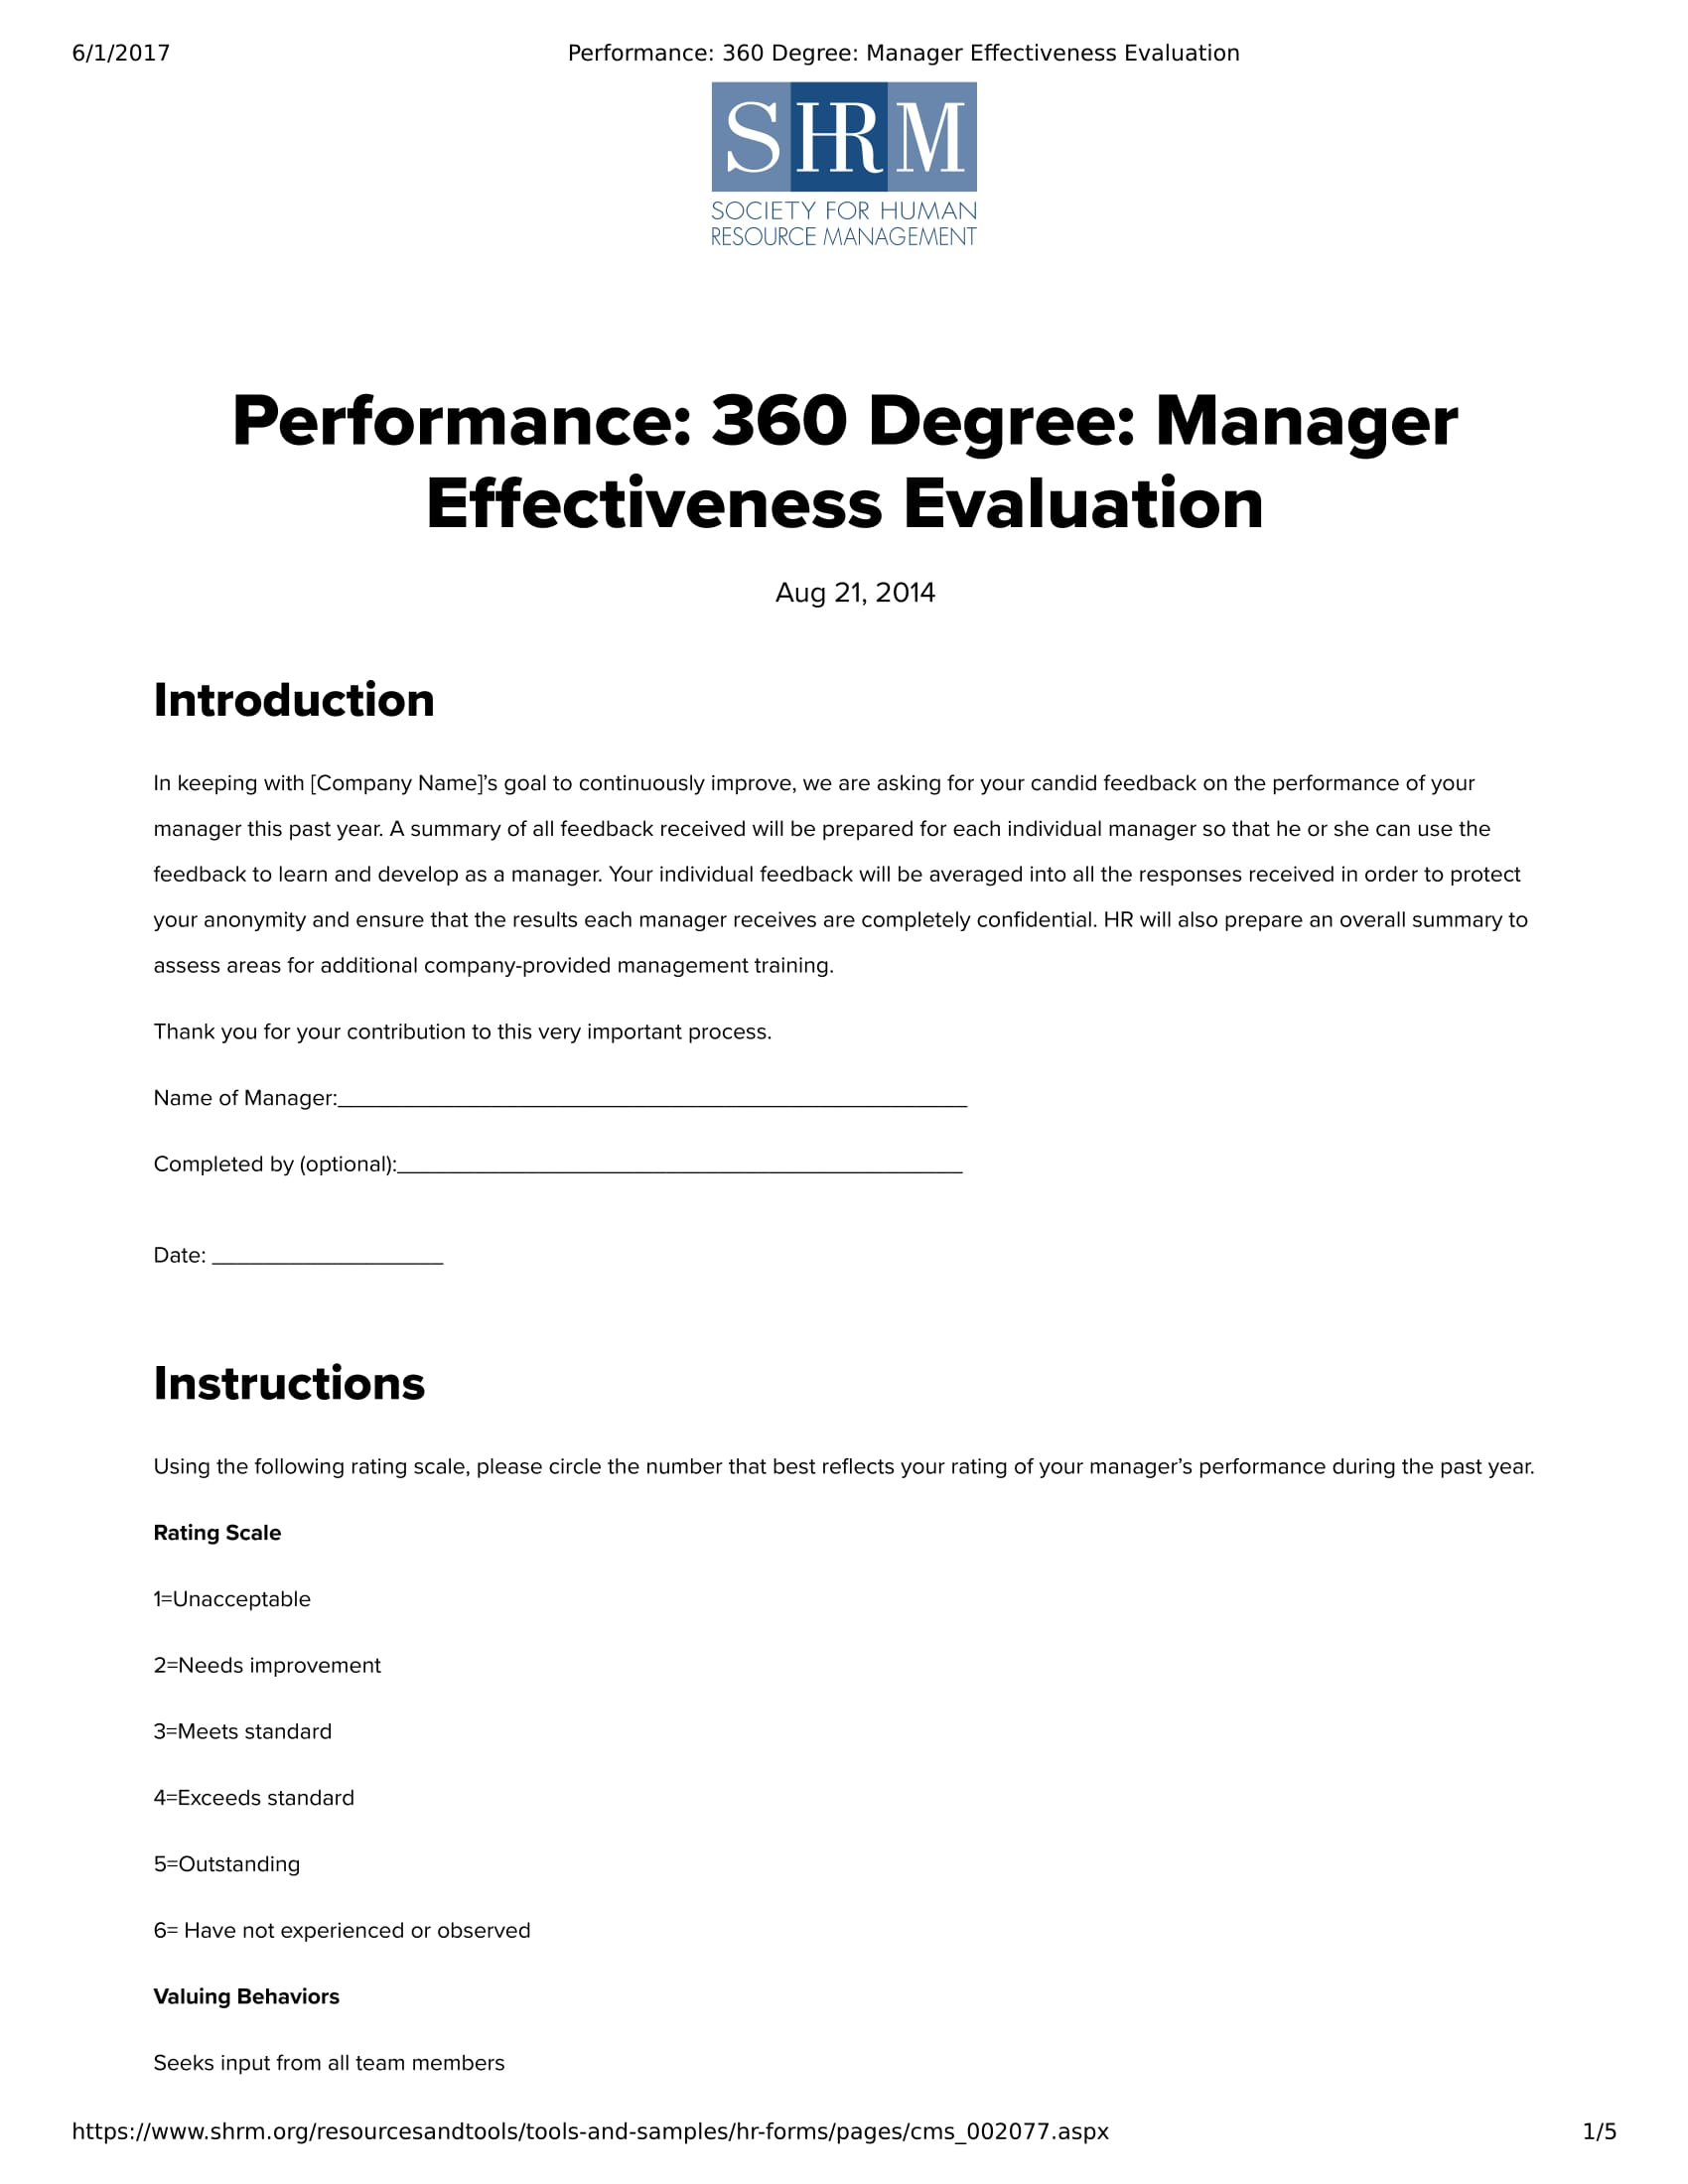 360 degree manager effectiveness evaluation